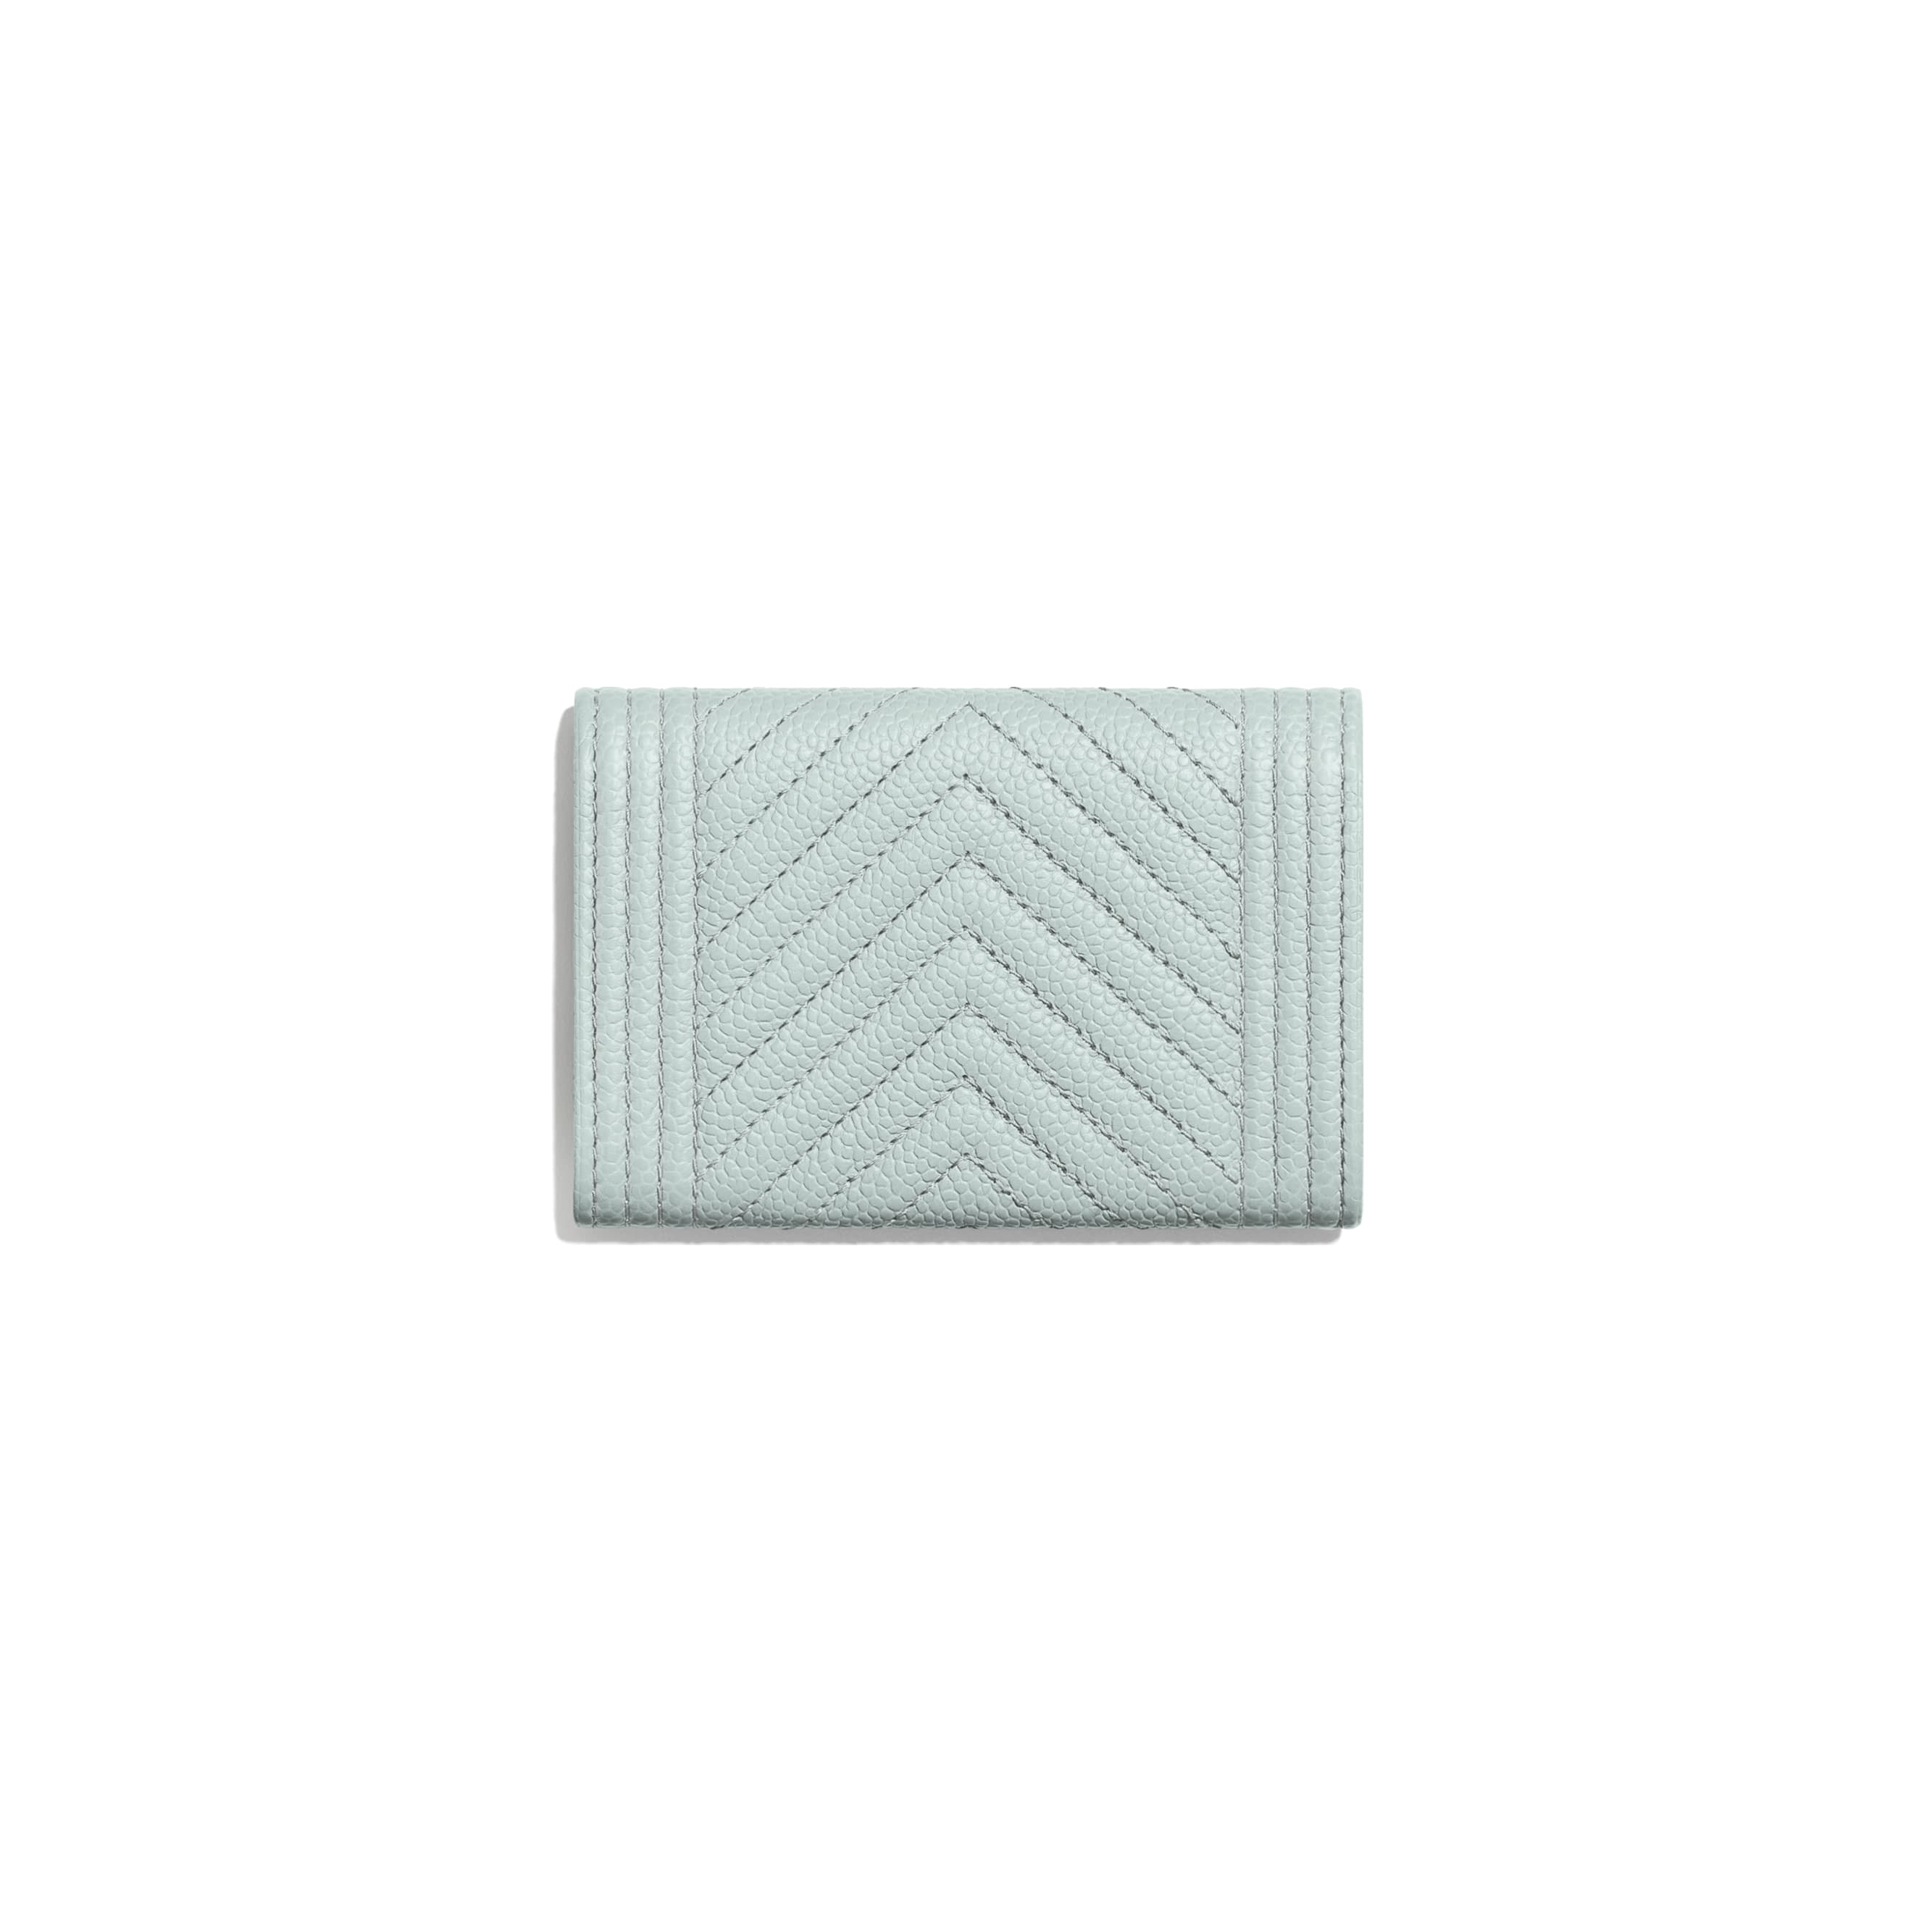 BOY CHANEL Flap Card Holder - Light Blue - Shiny Grained Calfskin & Silver-Tone Metal - CHANEL - Alternative view - see standard sized version